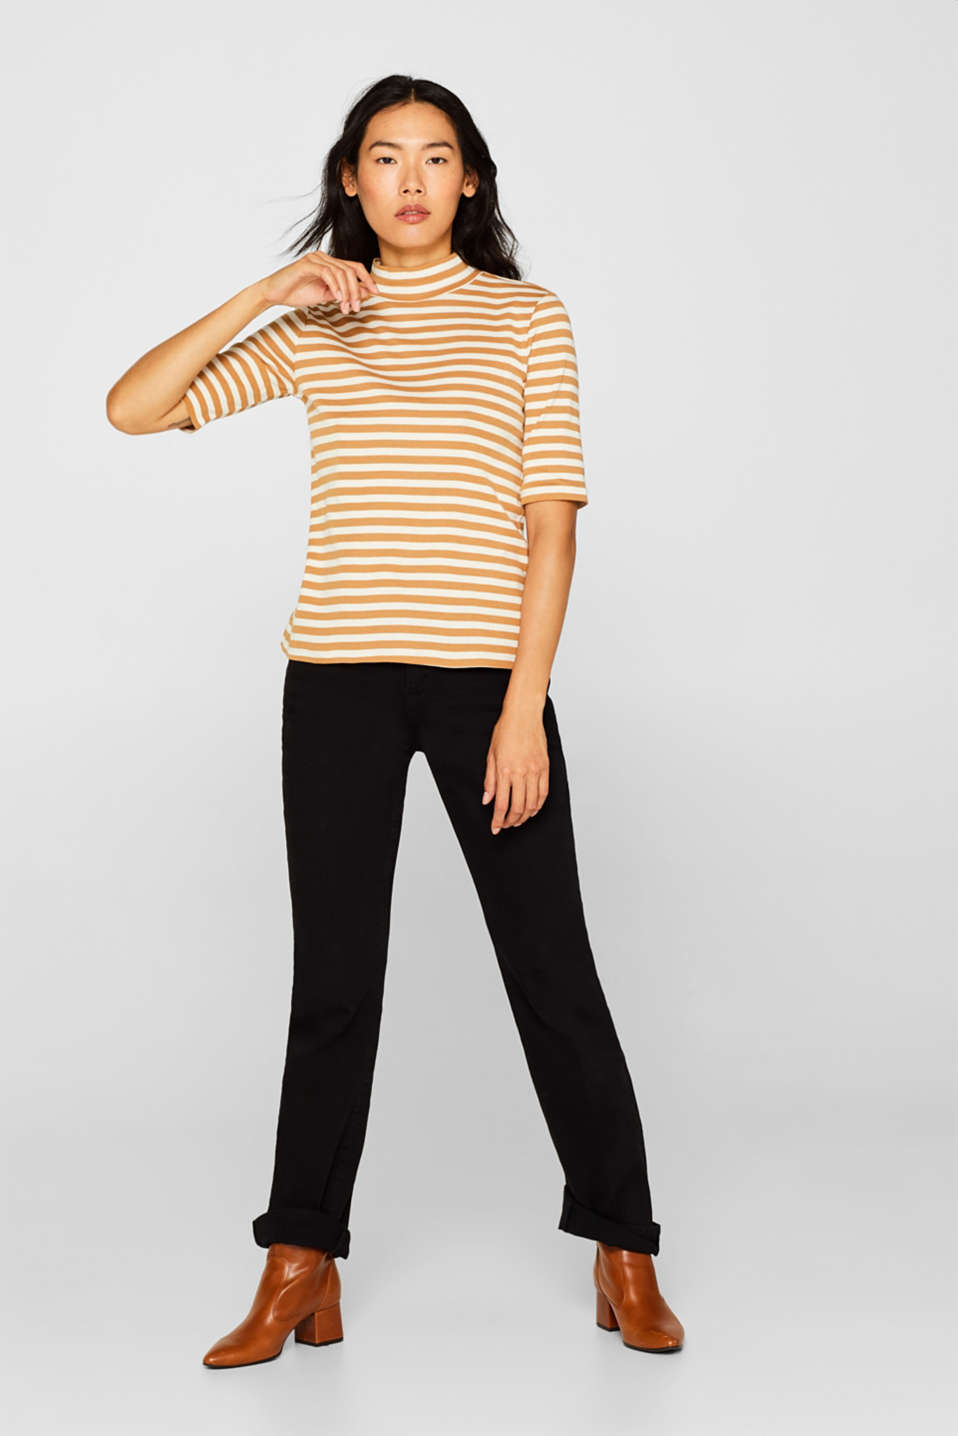 Striped top with a stand-up collar, made of 100% cotton, CAMEL, detail image number 1